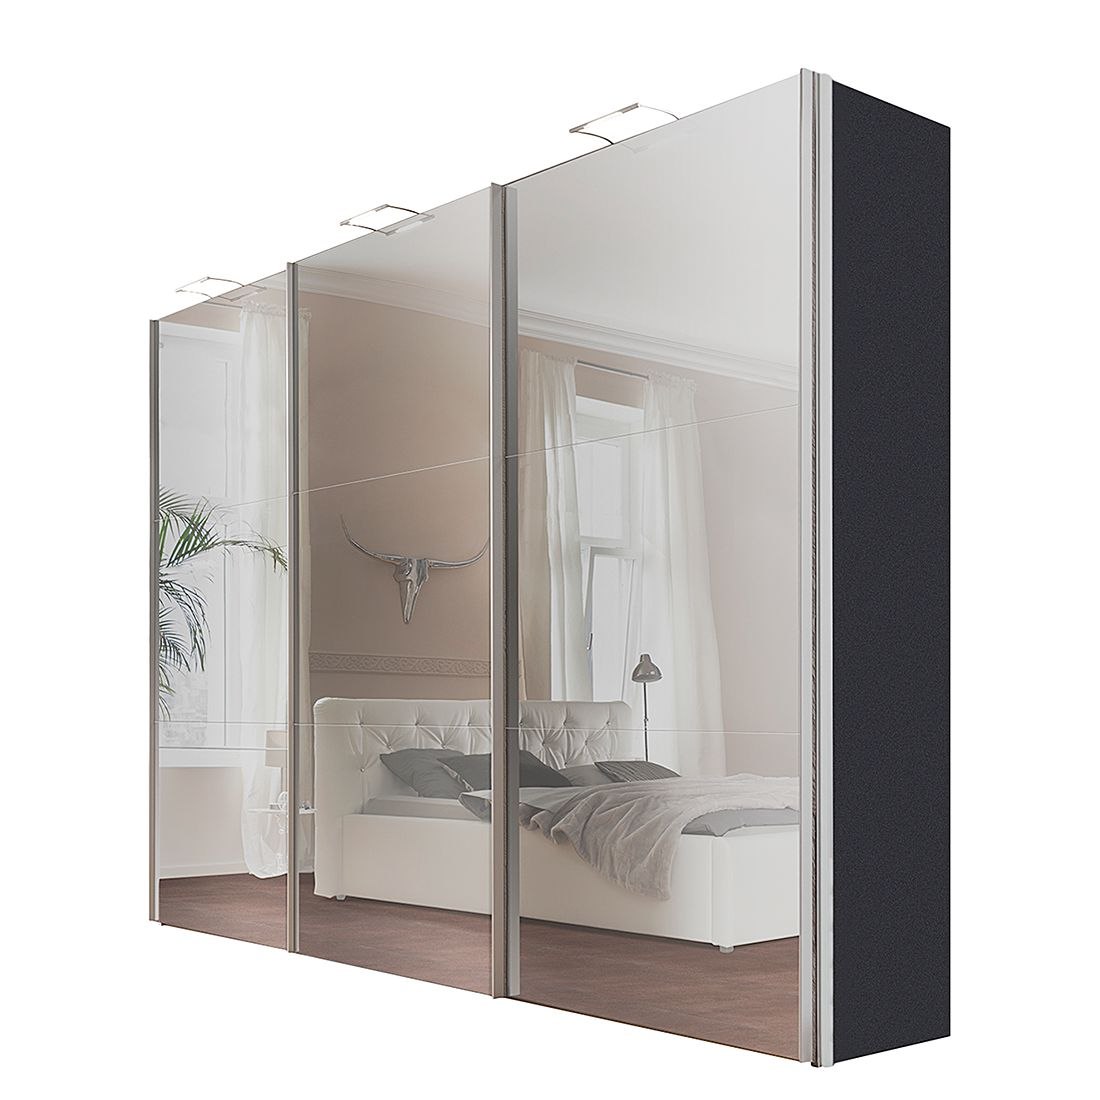 schwebet renschrank ruby graphit grauspiegel breite x h he 200 x 236 cm 2 t rig schrank. Black Bedroom Furniture Sets. Home Design Ideas